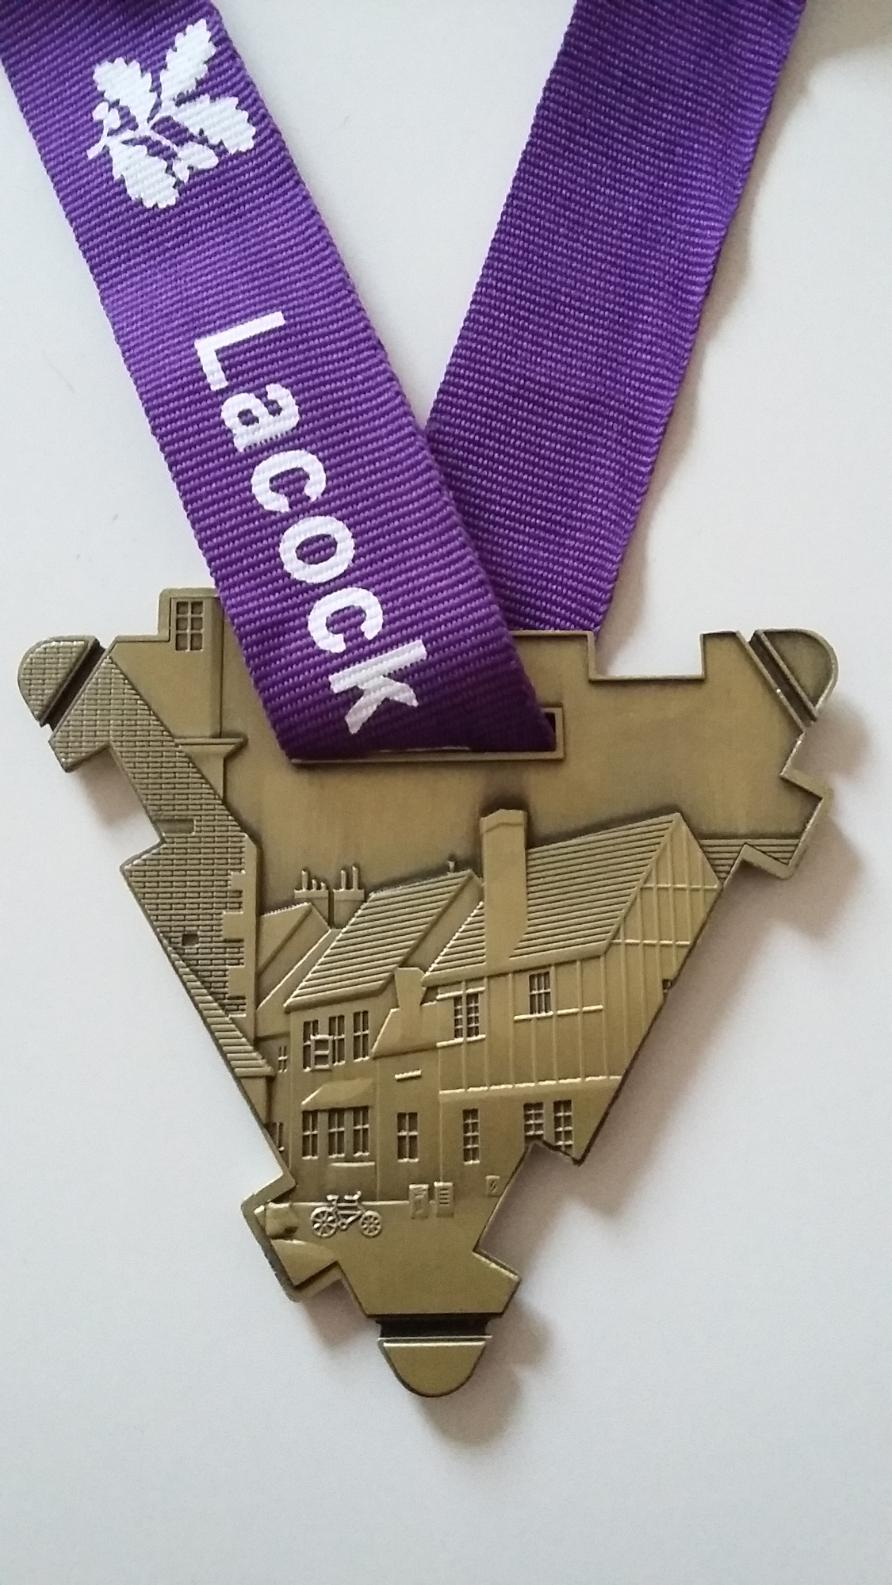 Lacock Road Race Medal